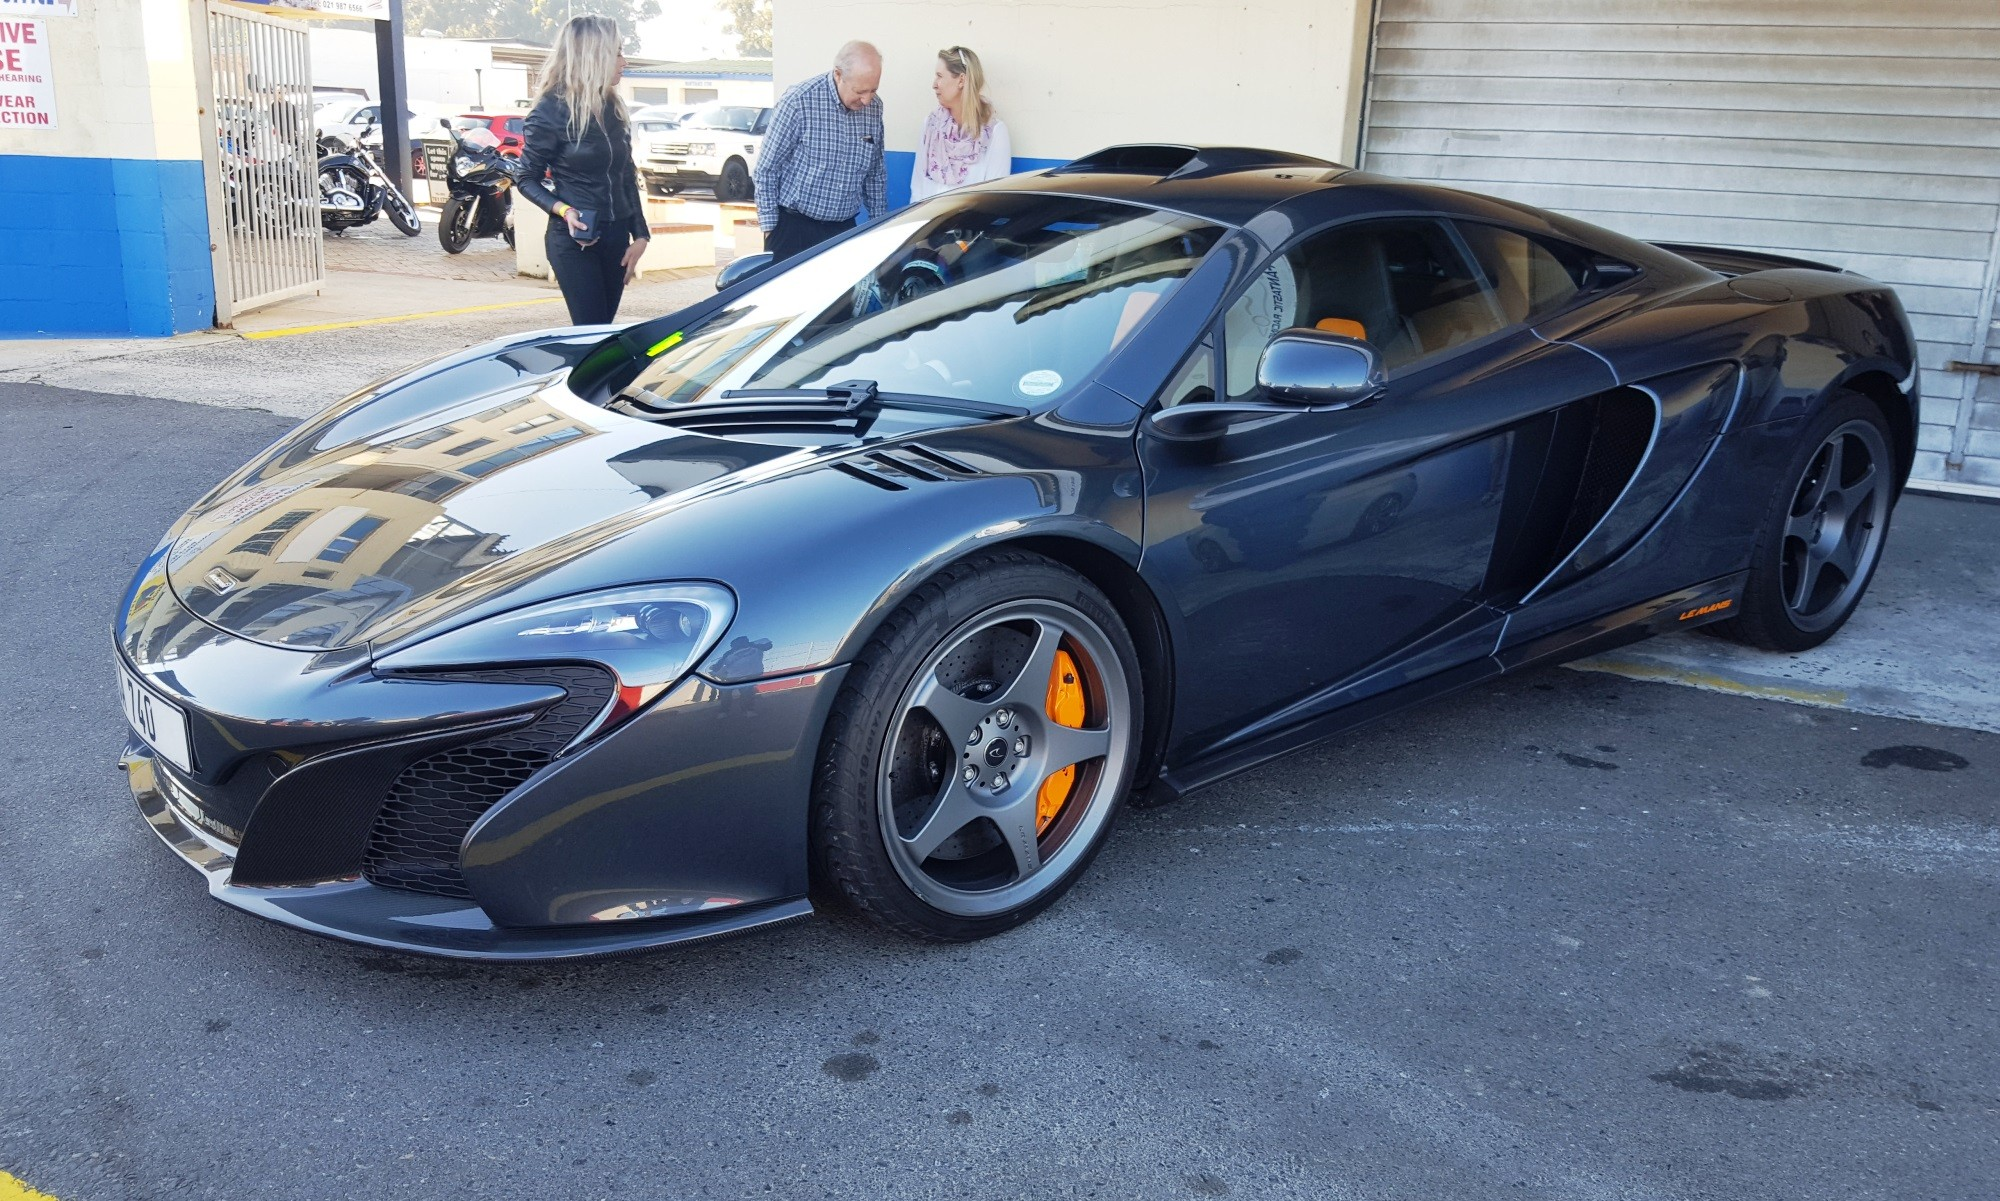 The driver of this limited-edition McLaren was not shy.